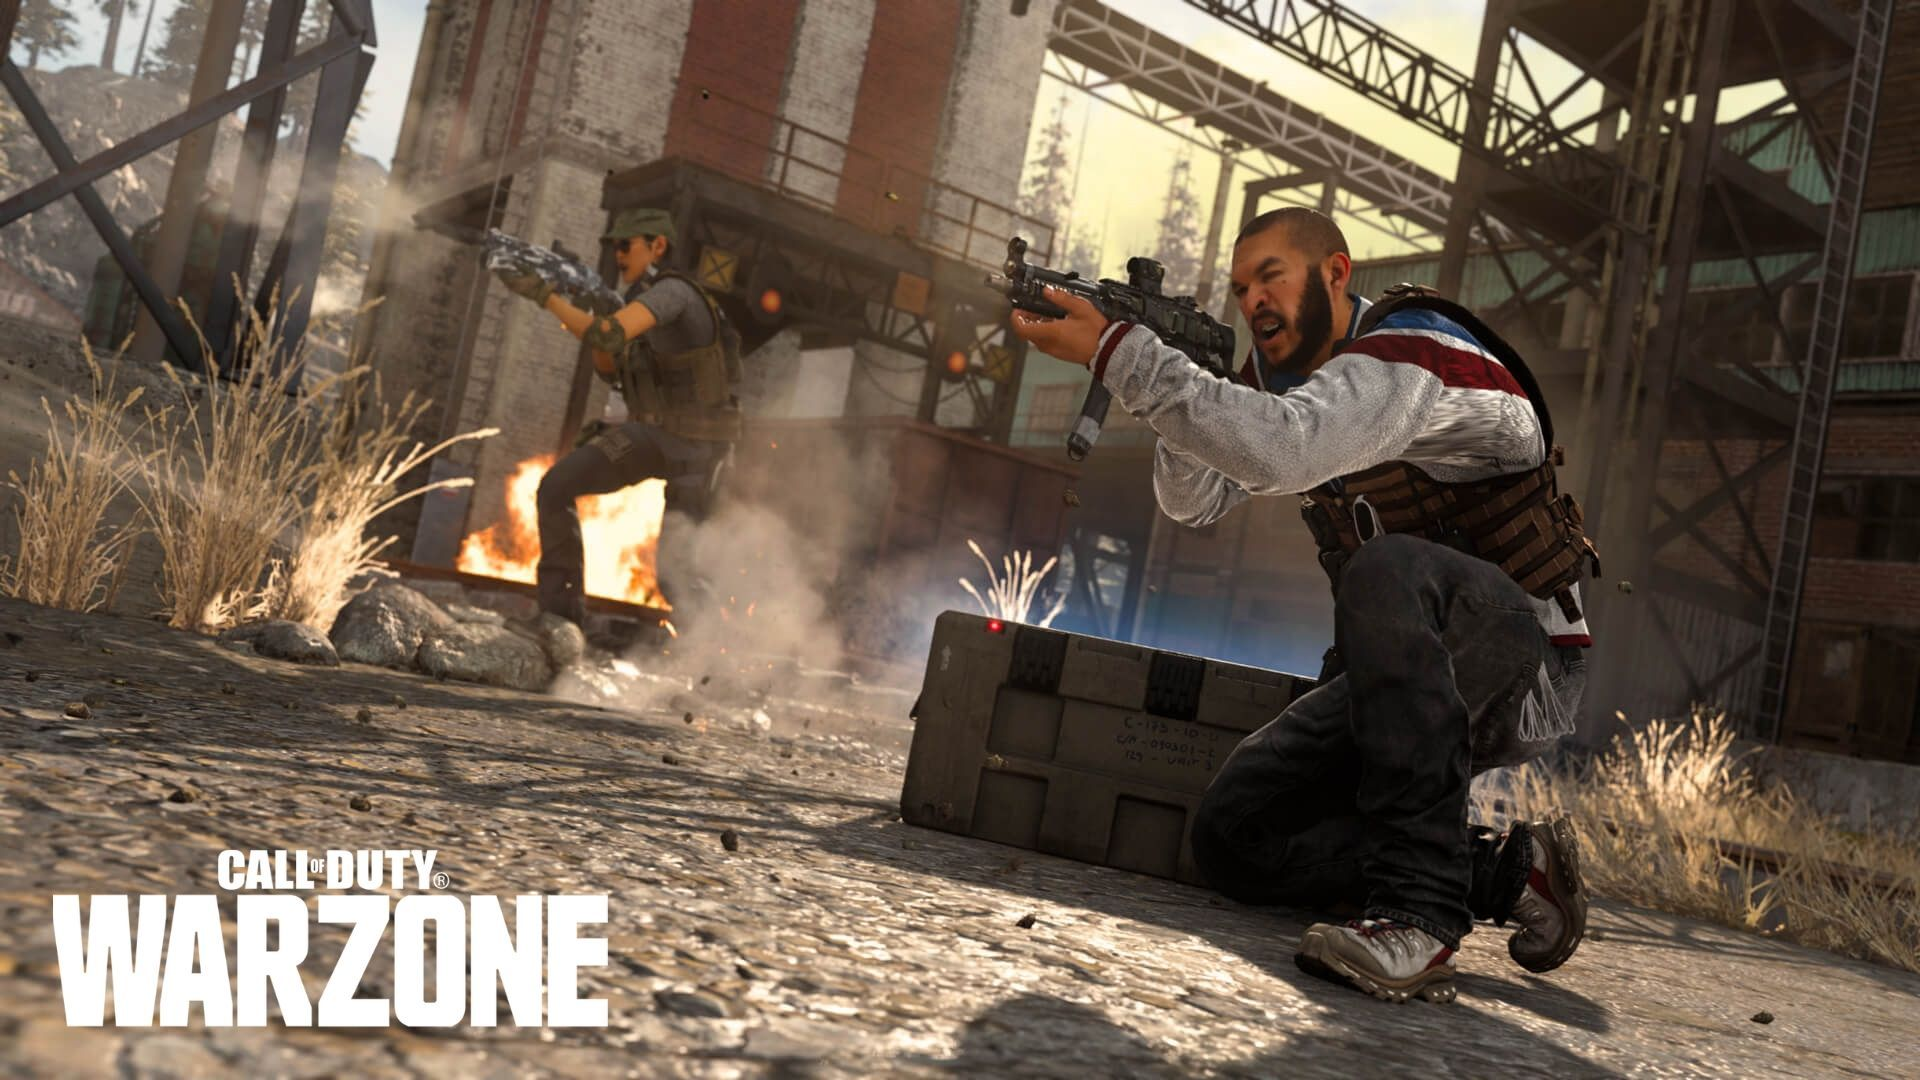 Warzone characters aiming weapons